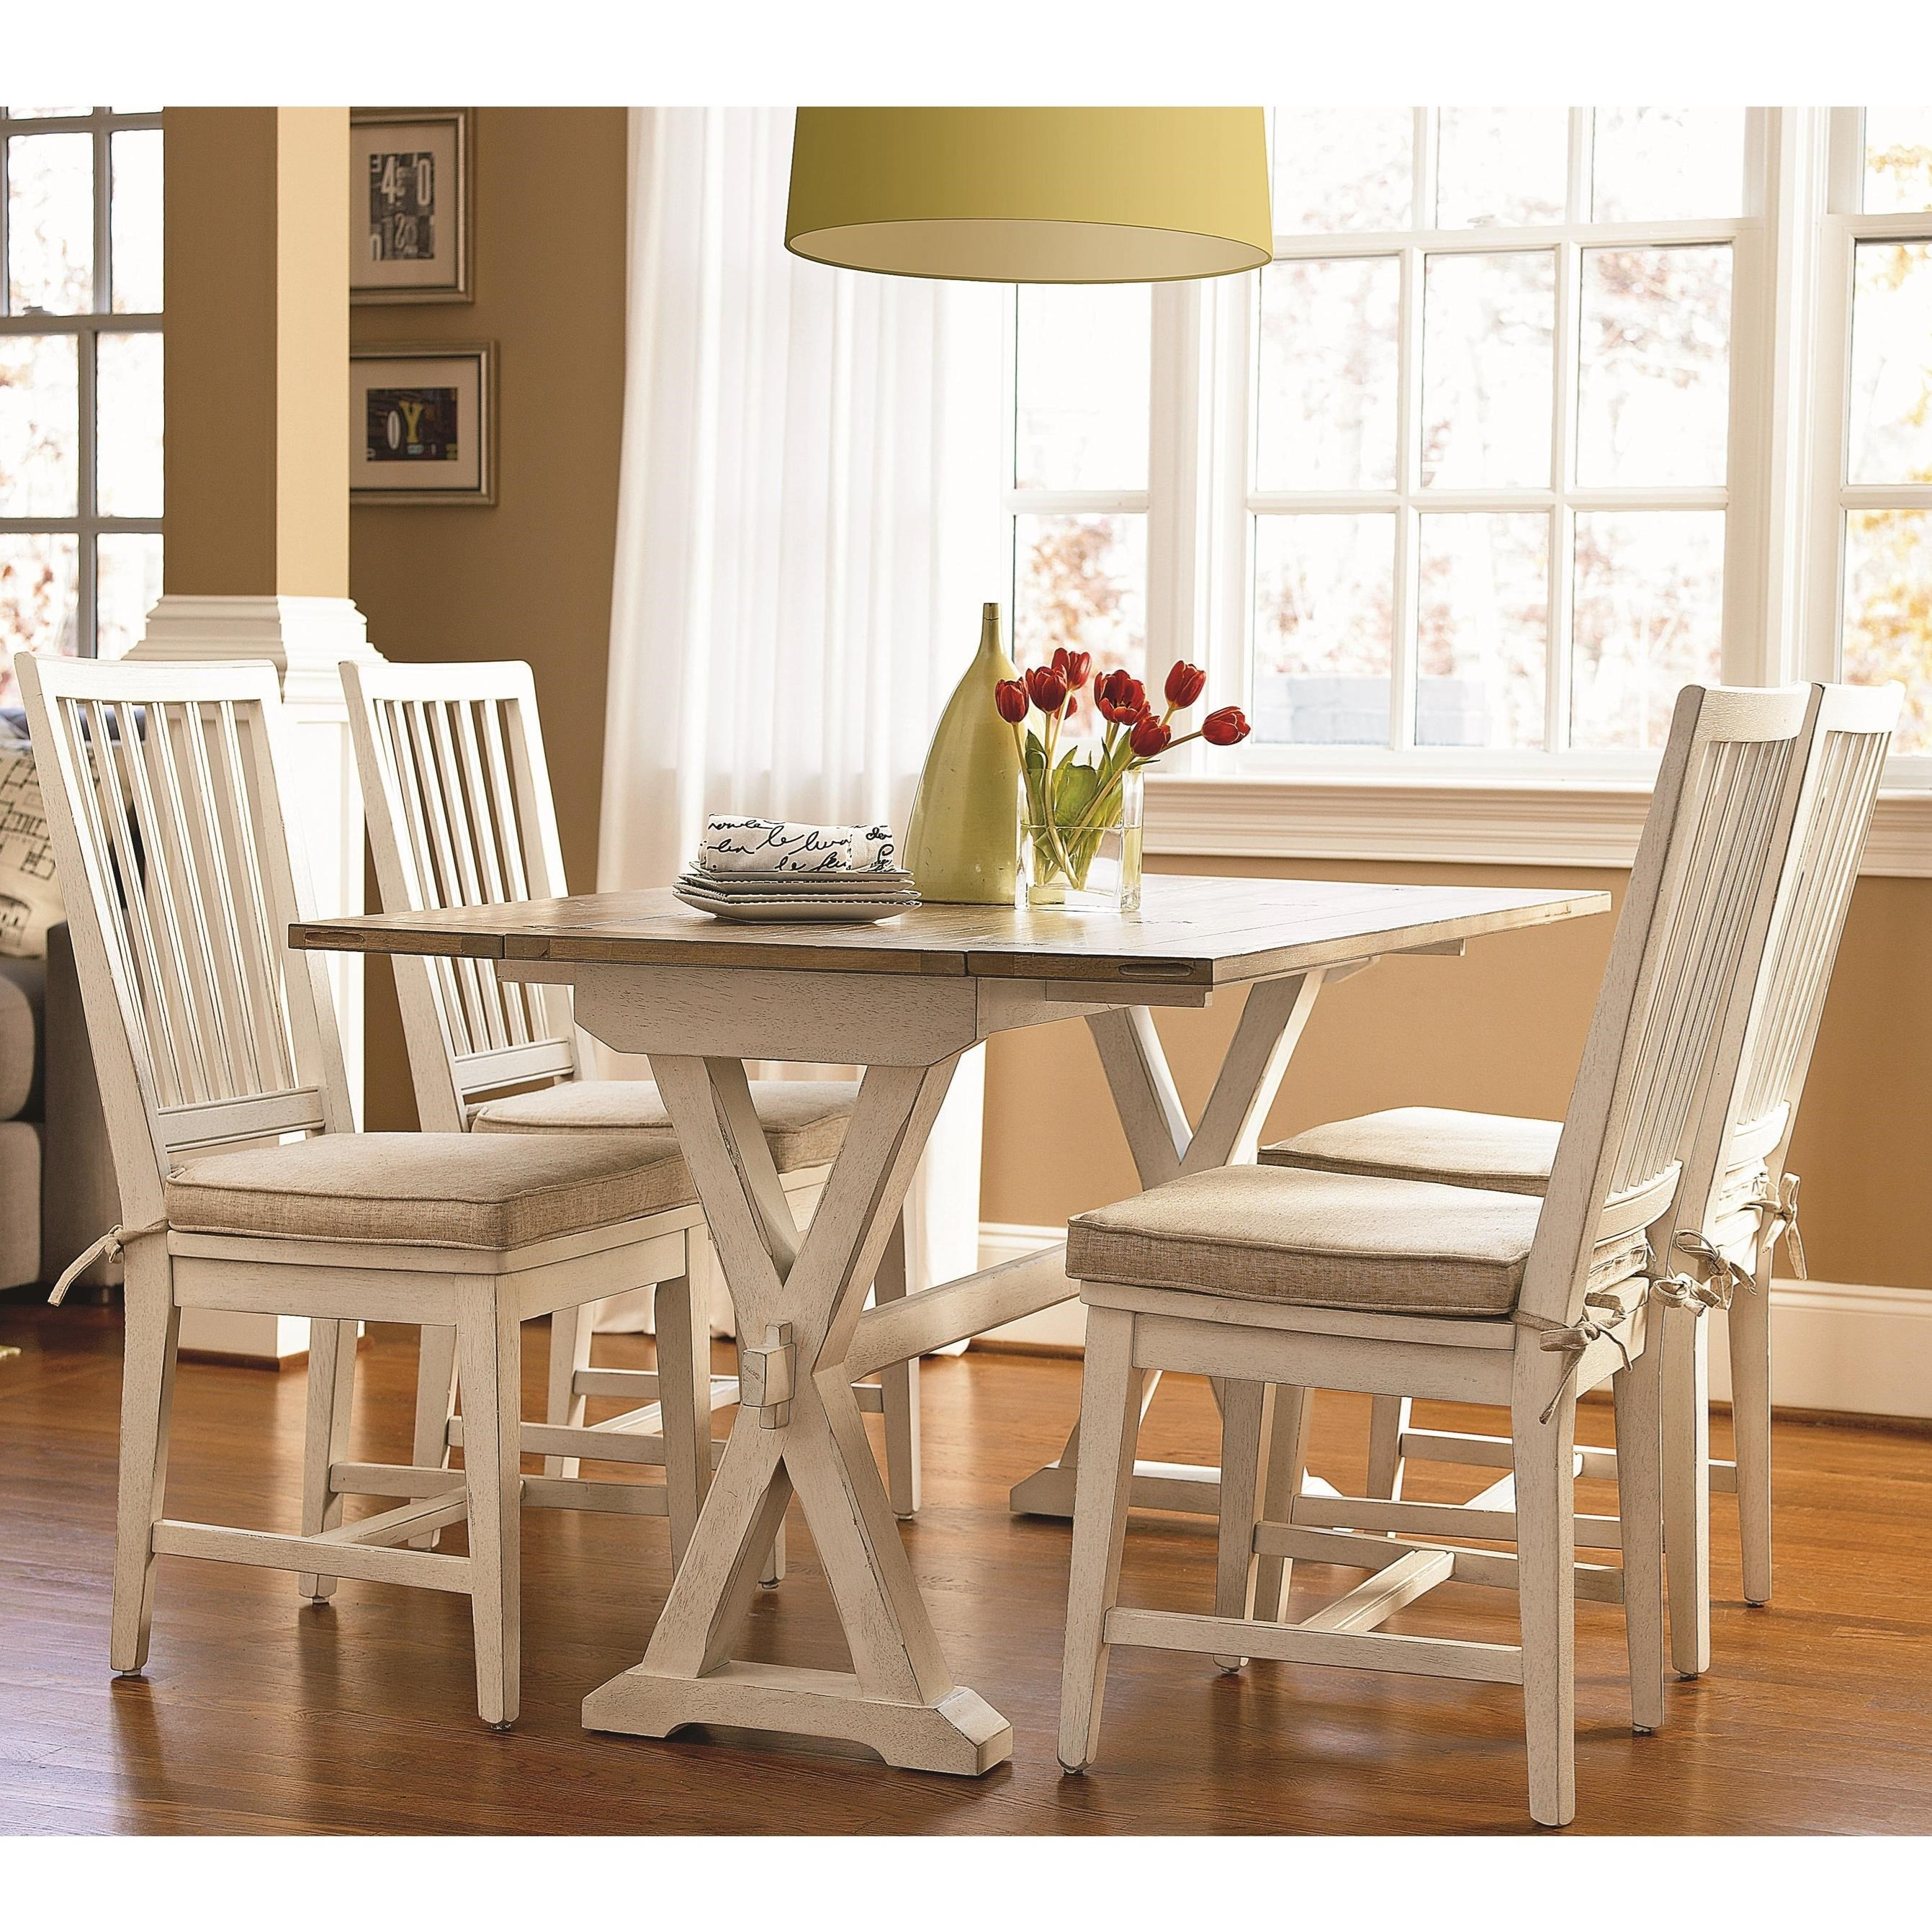 Dining Room Consoles: Universal Curated 5 Piece Dining Set With Drop Leaf